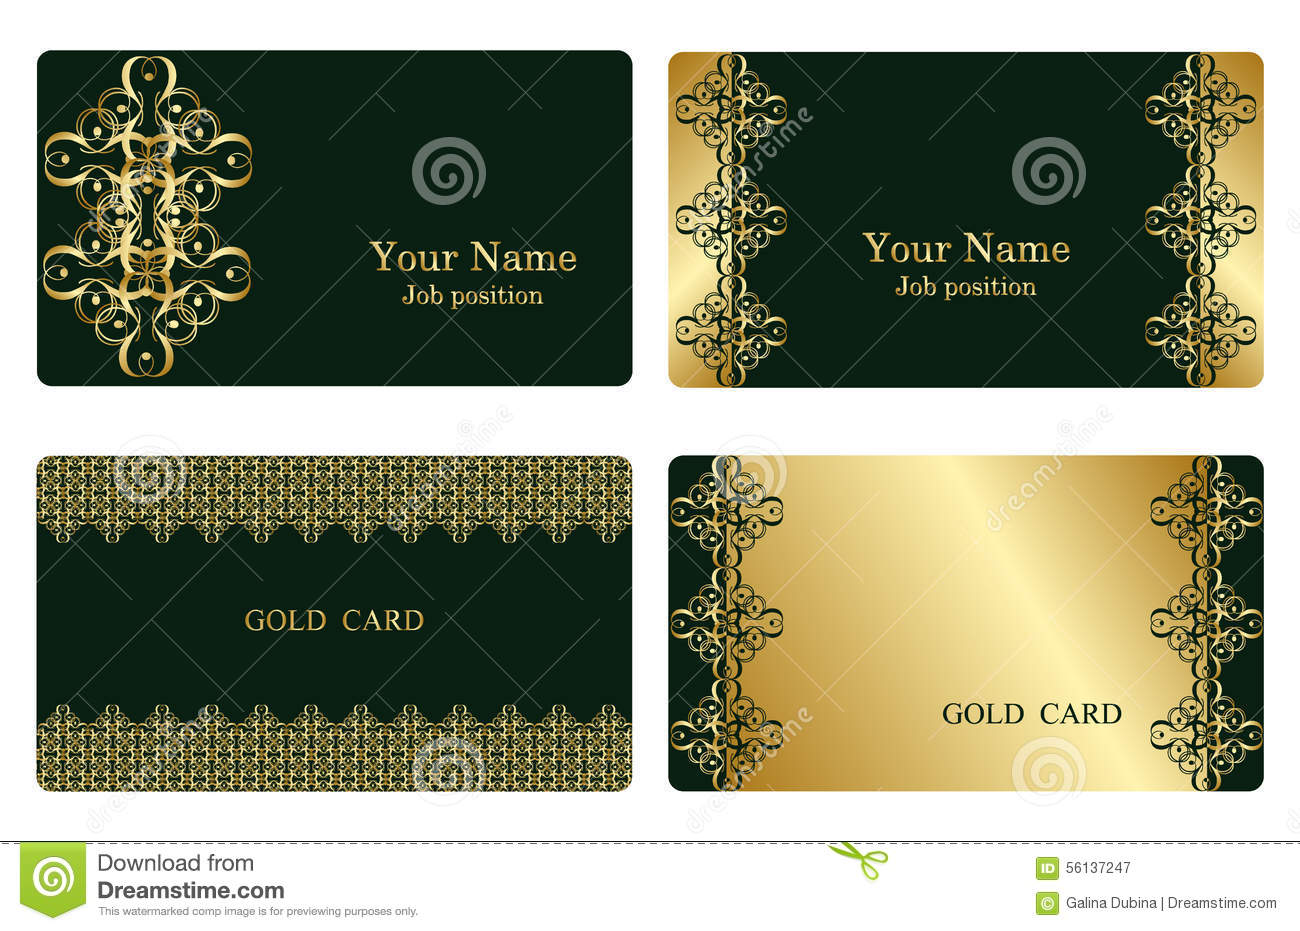 Gold Business Cards Illustration 56137247 - Megapixl